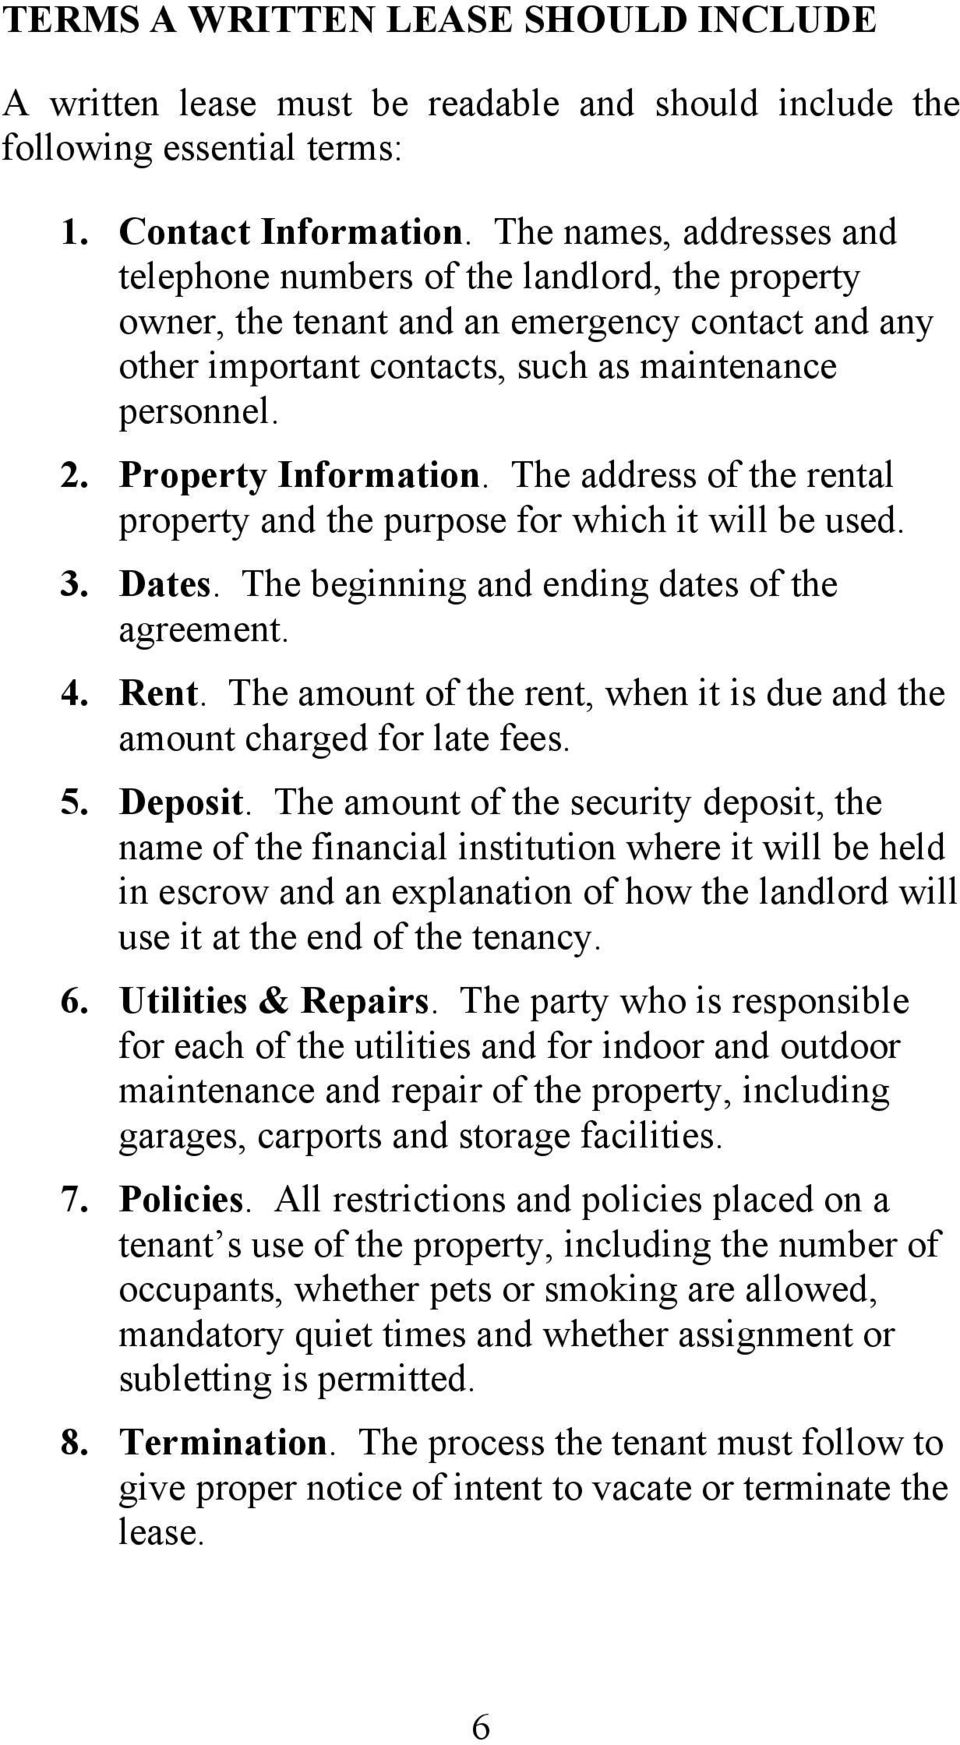 Property Information. The address of the rental property and the purpose for which it will be used. 3. Dates. The beginning and ending dates of the agreement. 4. Rent.